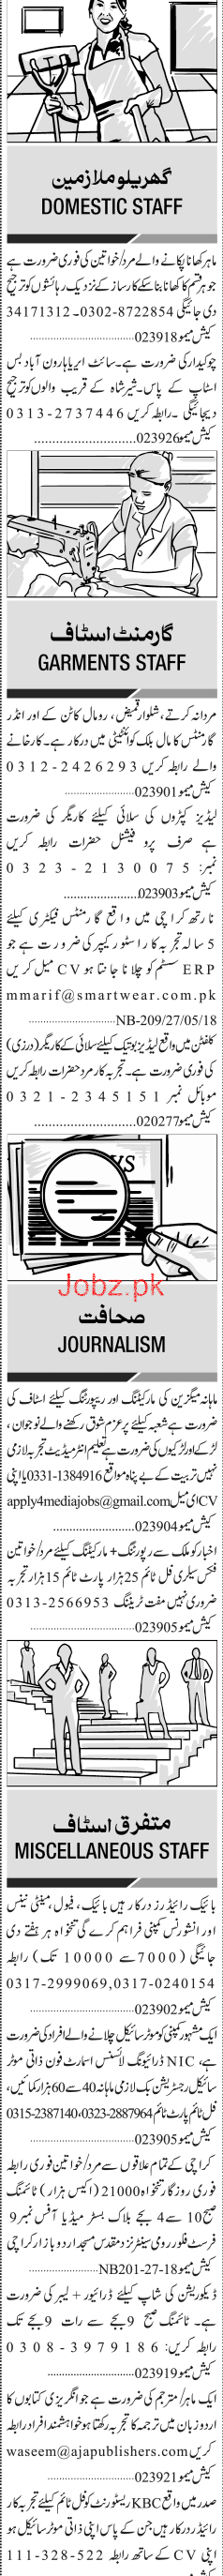 Chawkidars, Cooks, Store Keepers, Tailors Job Opportunity